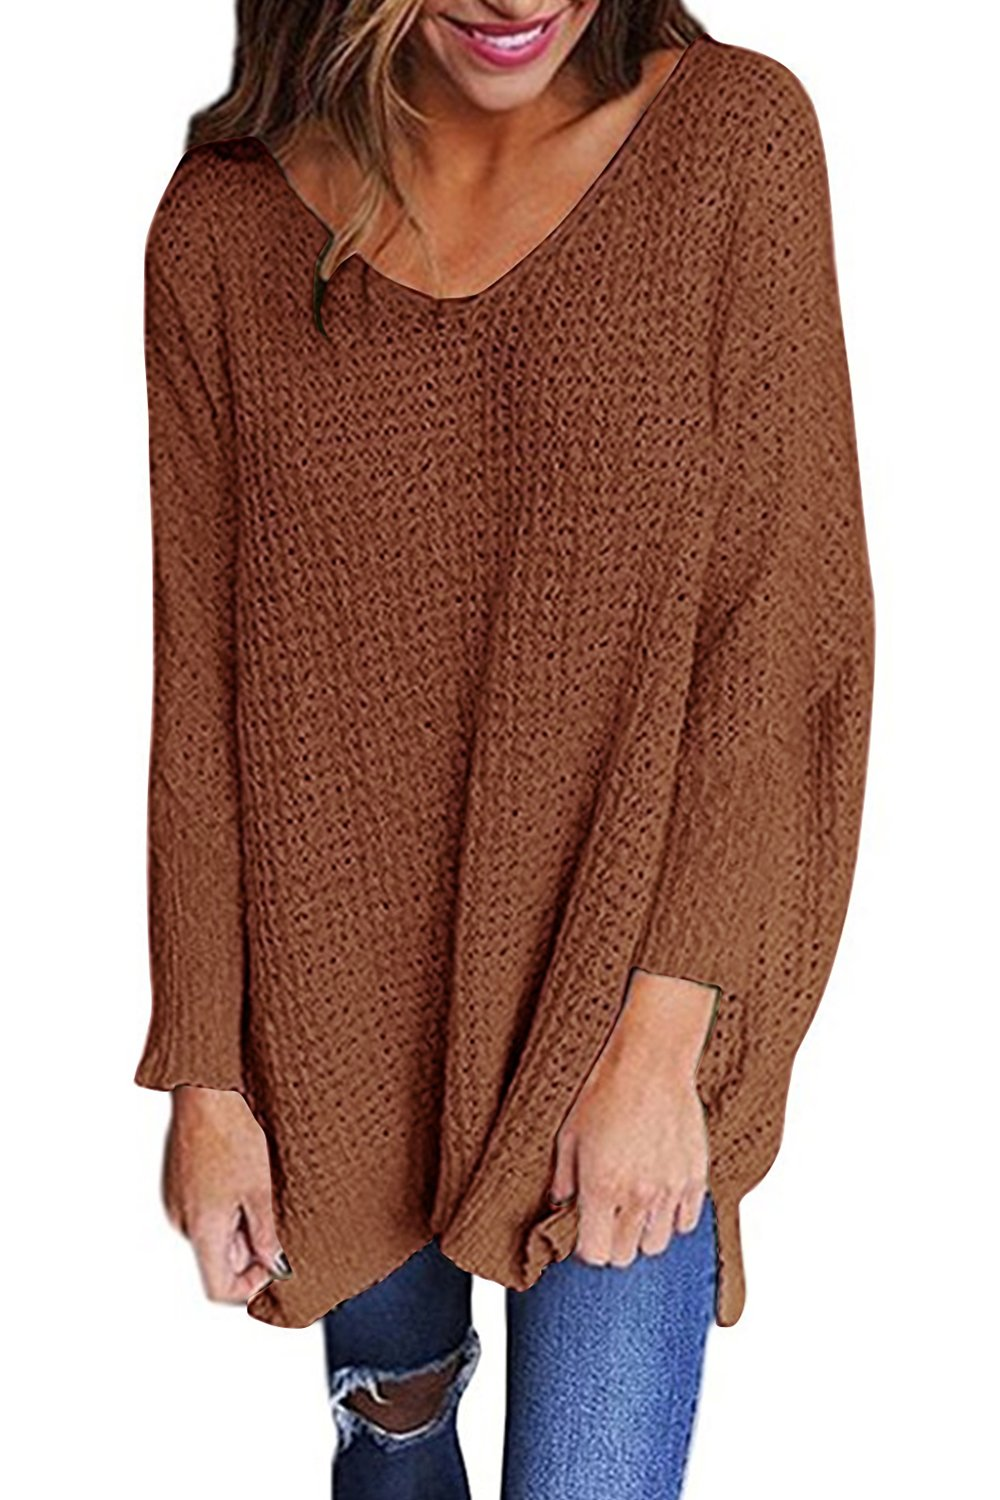 Chellysun Women V Neck Sweaters Knit Ribbed Long Sleeve Loose Fitting Pullover